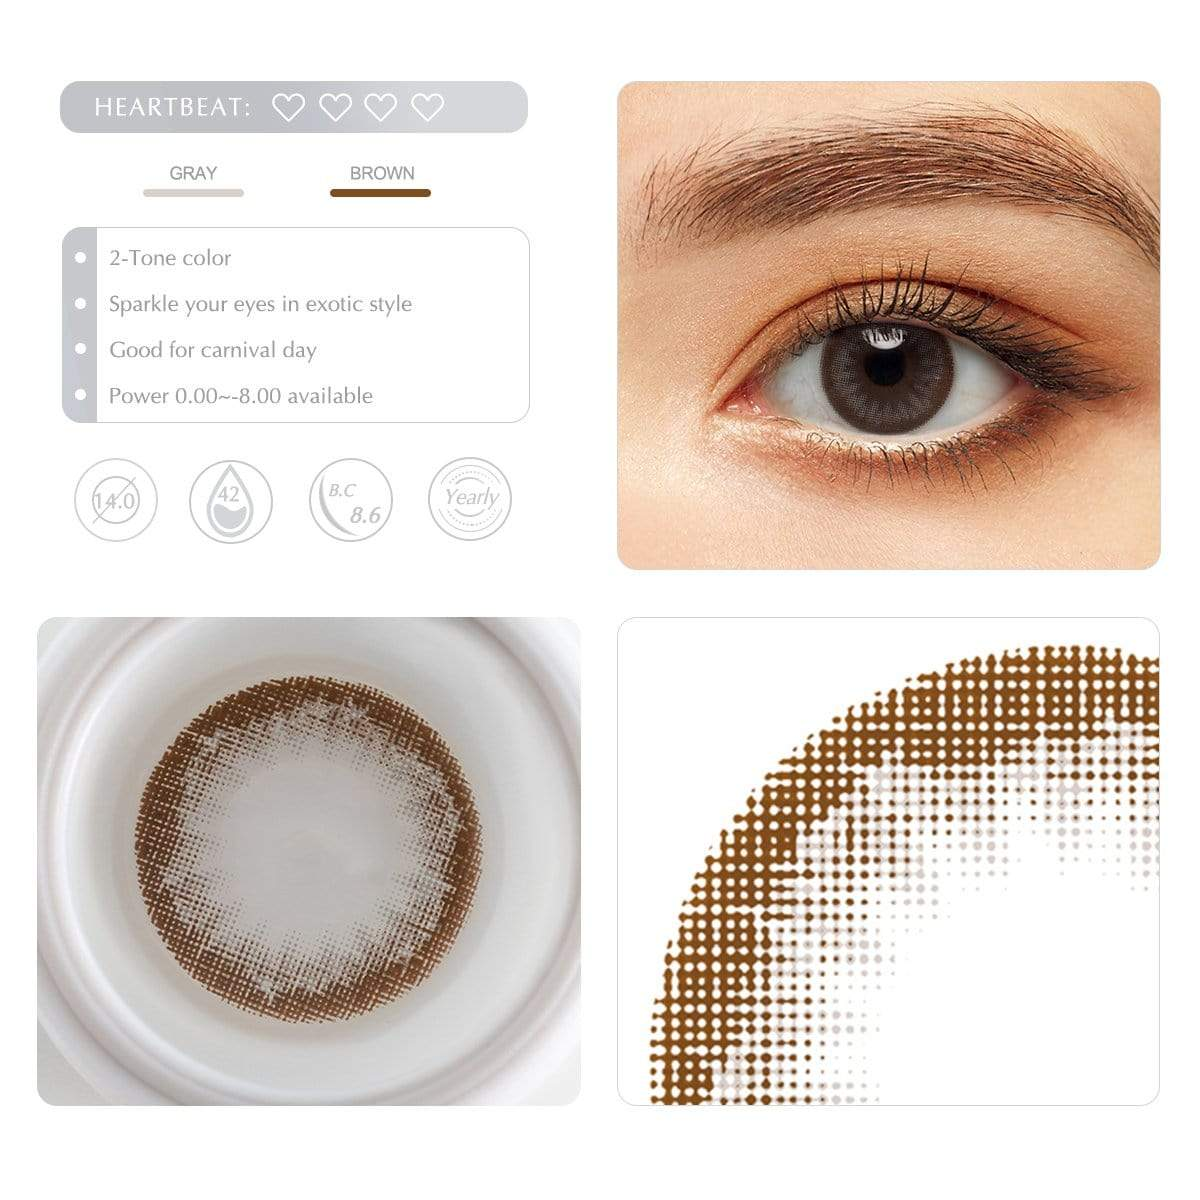 Choco gray cheap contact lenses details display rederings